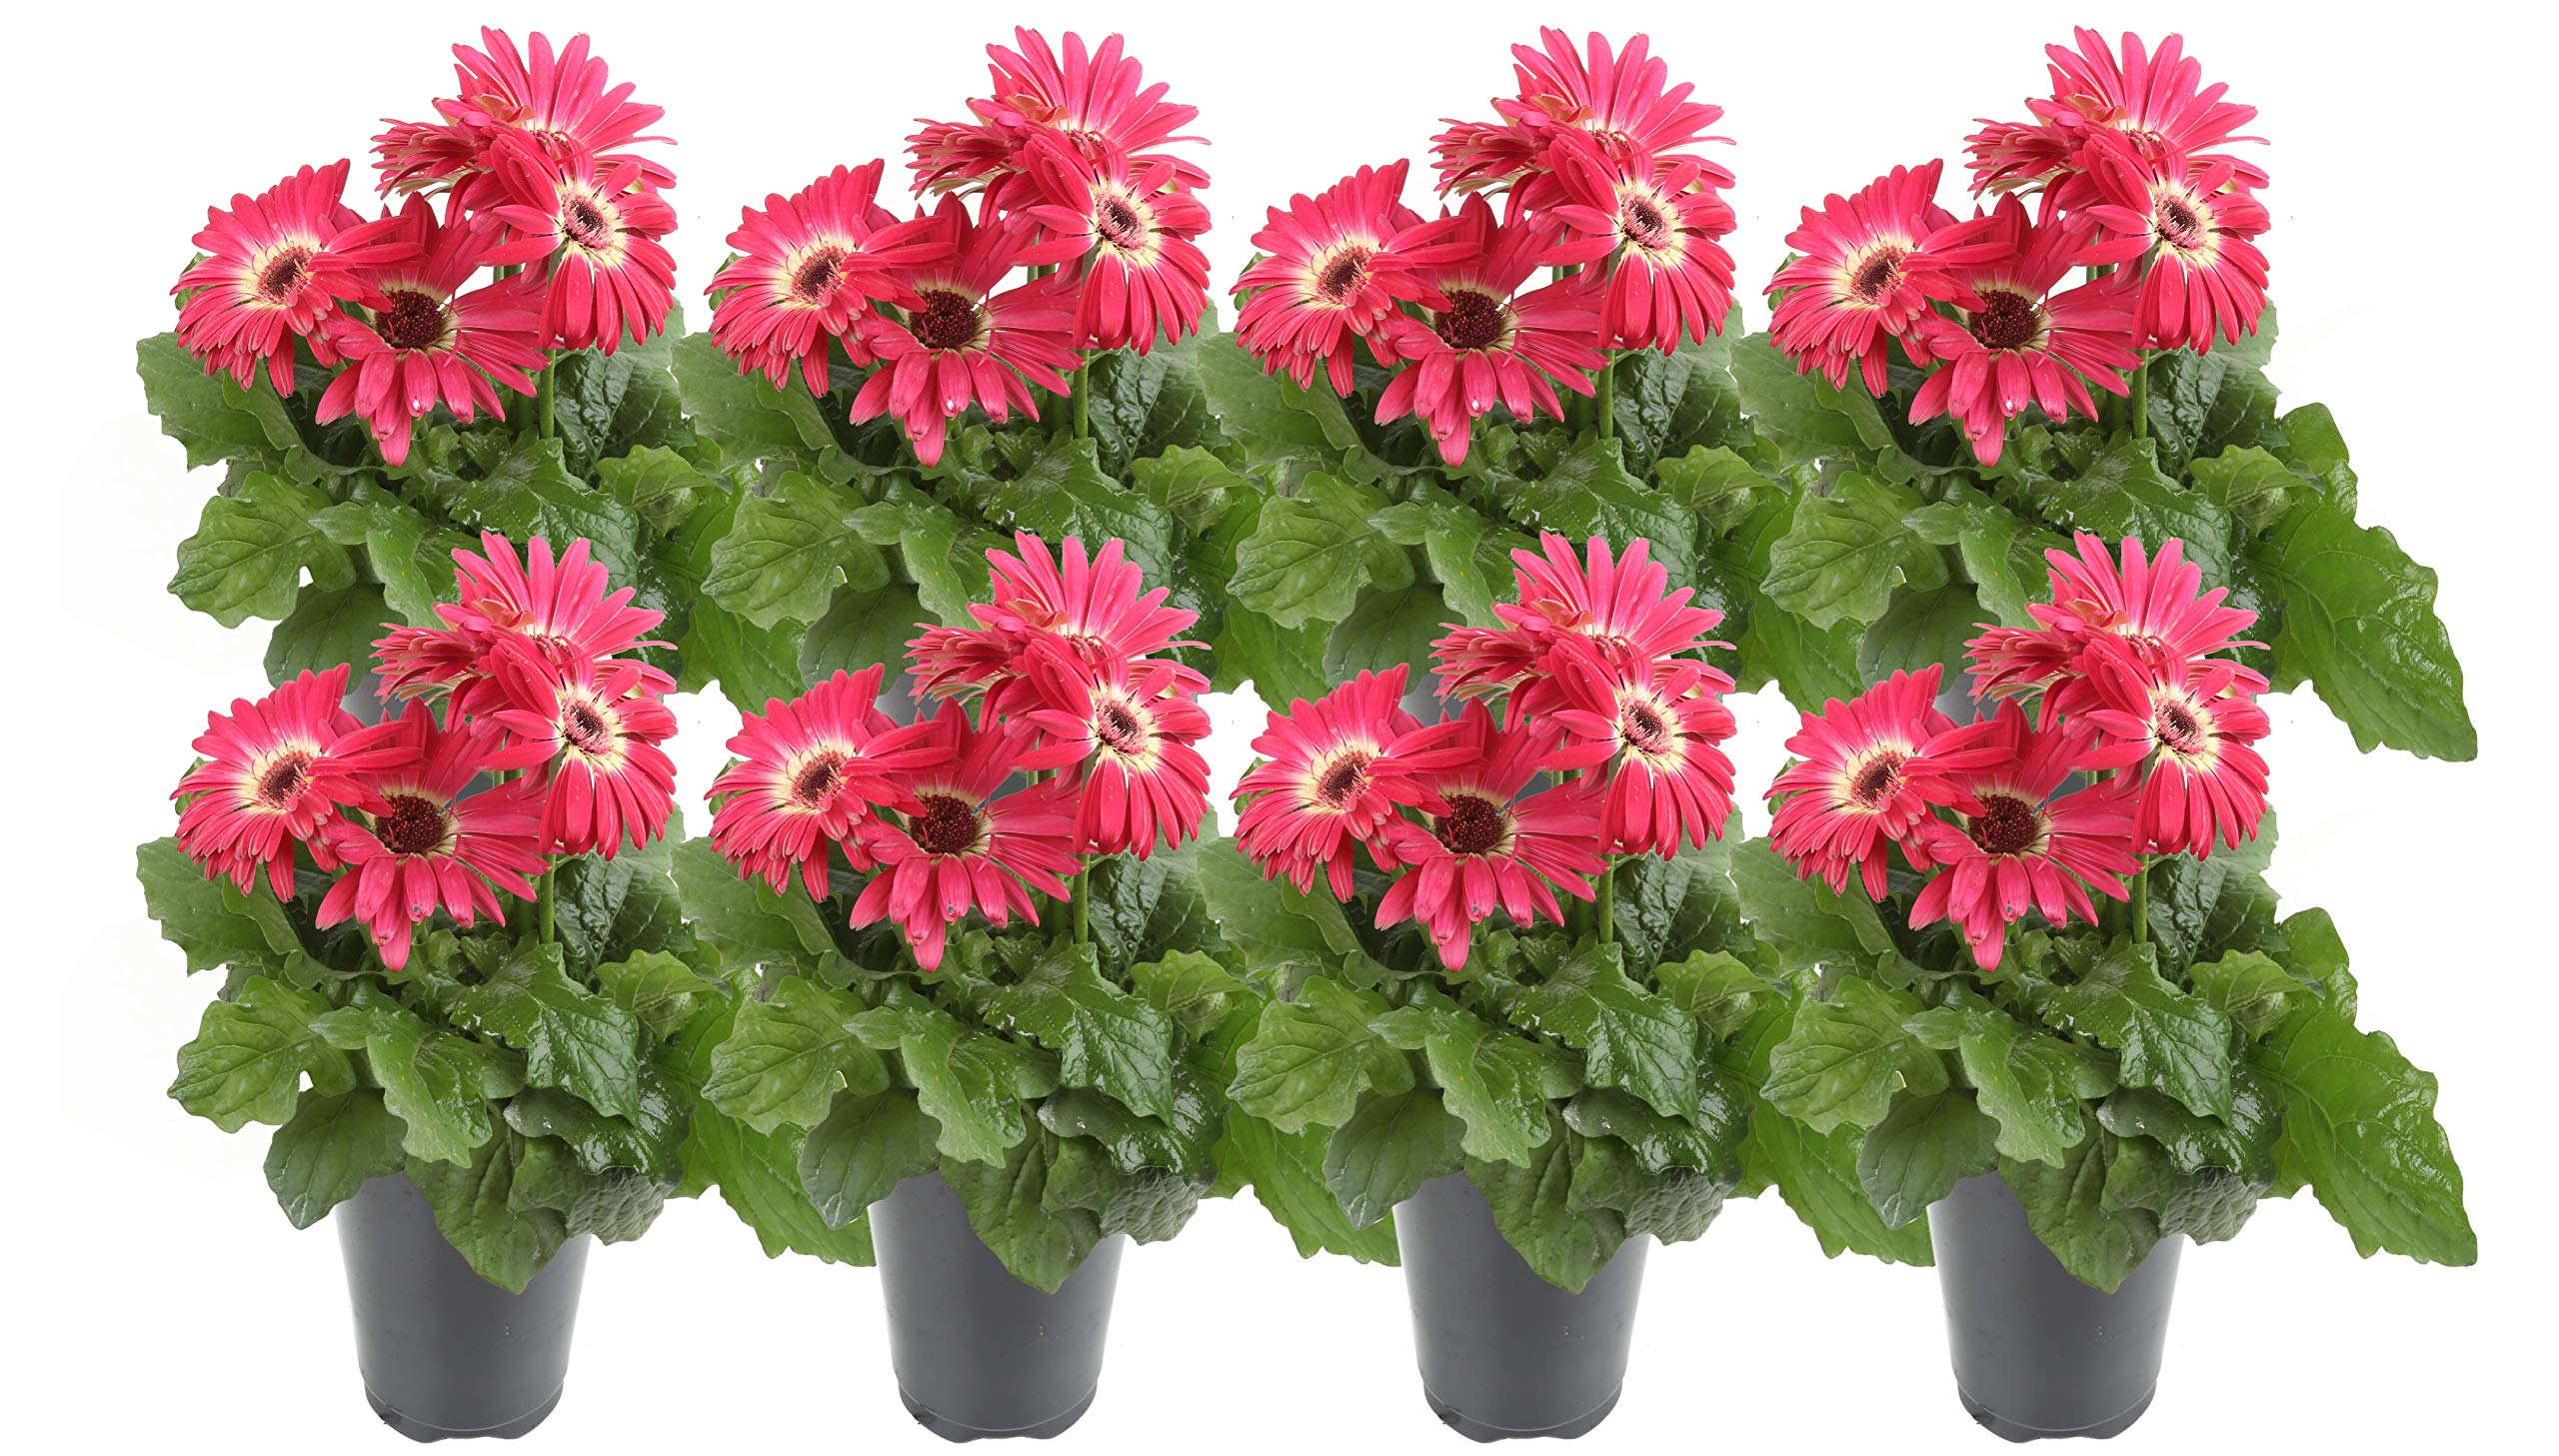 Costa Farms Gerbera, Transvaal Daisy Live Outdoor Plant 1 QT Grower's Pot, 8-Pack, Pink